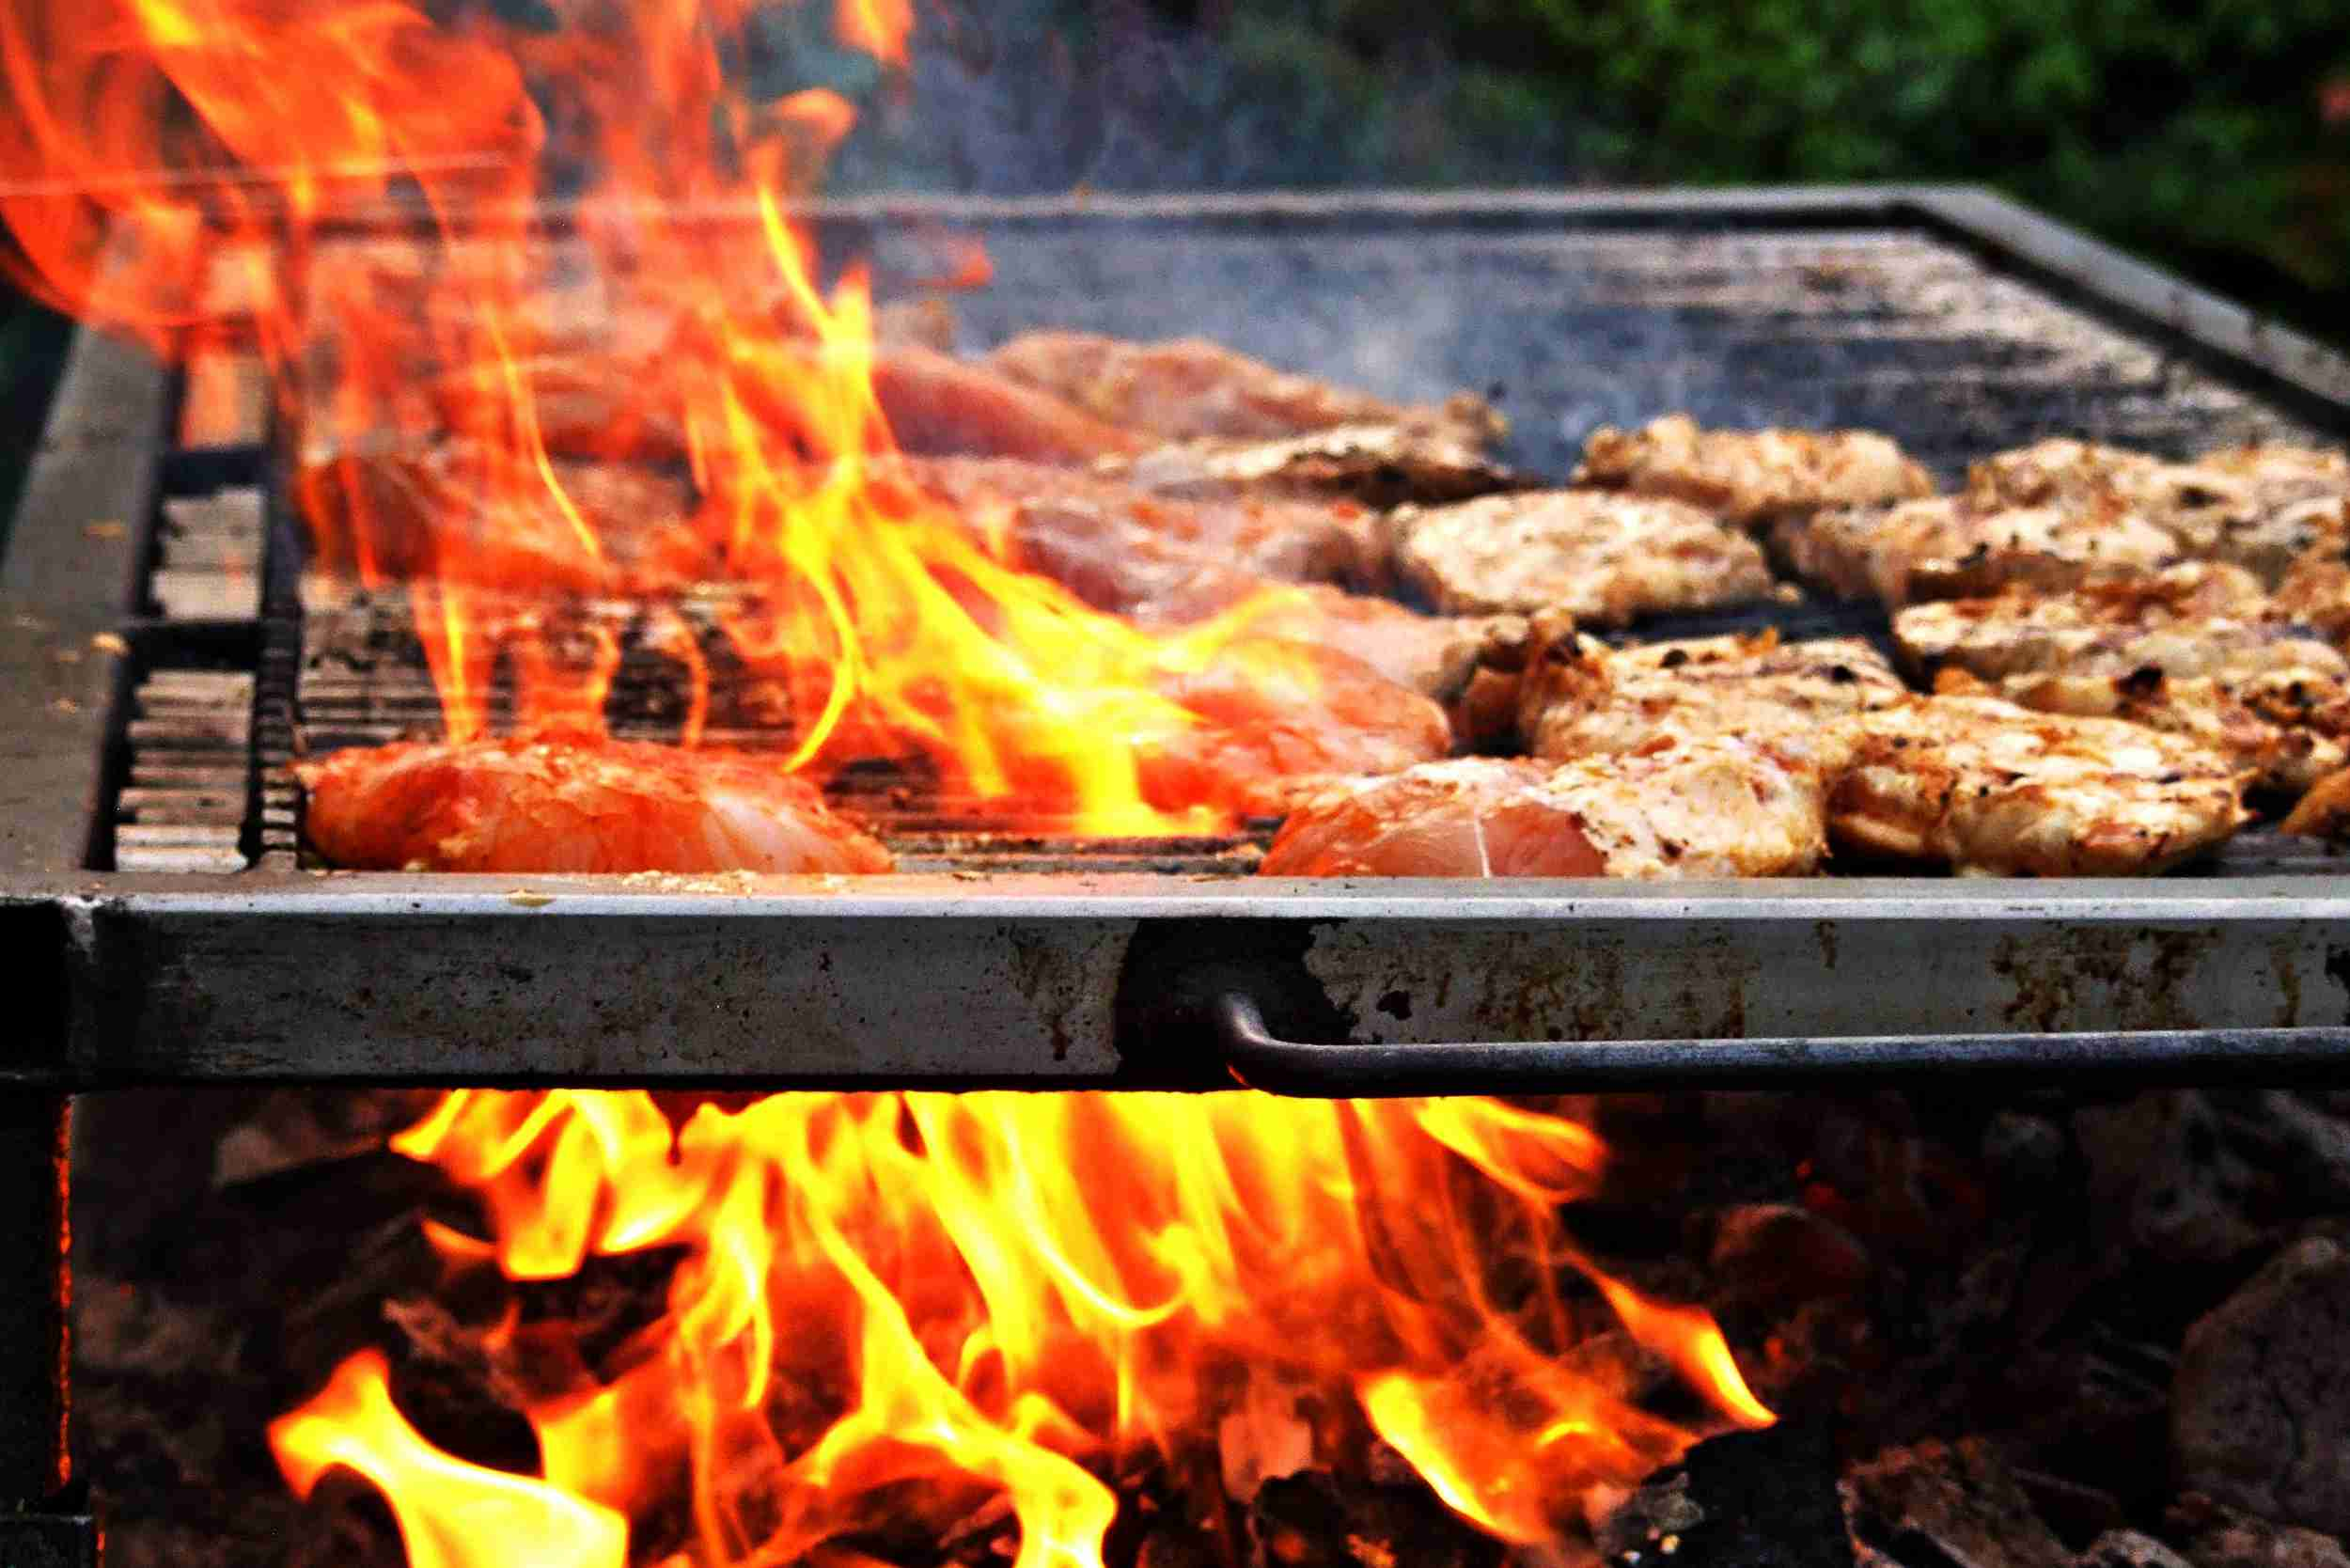 A large grill flare-up while grilling chicken